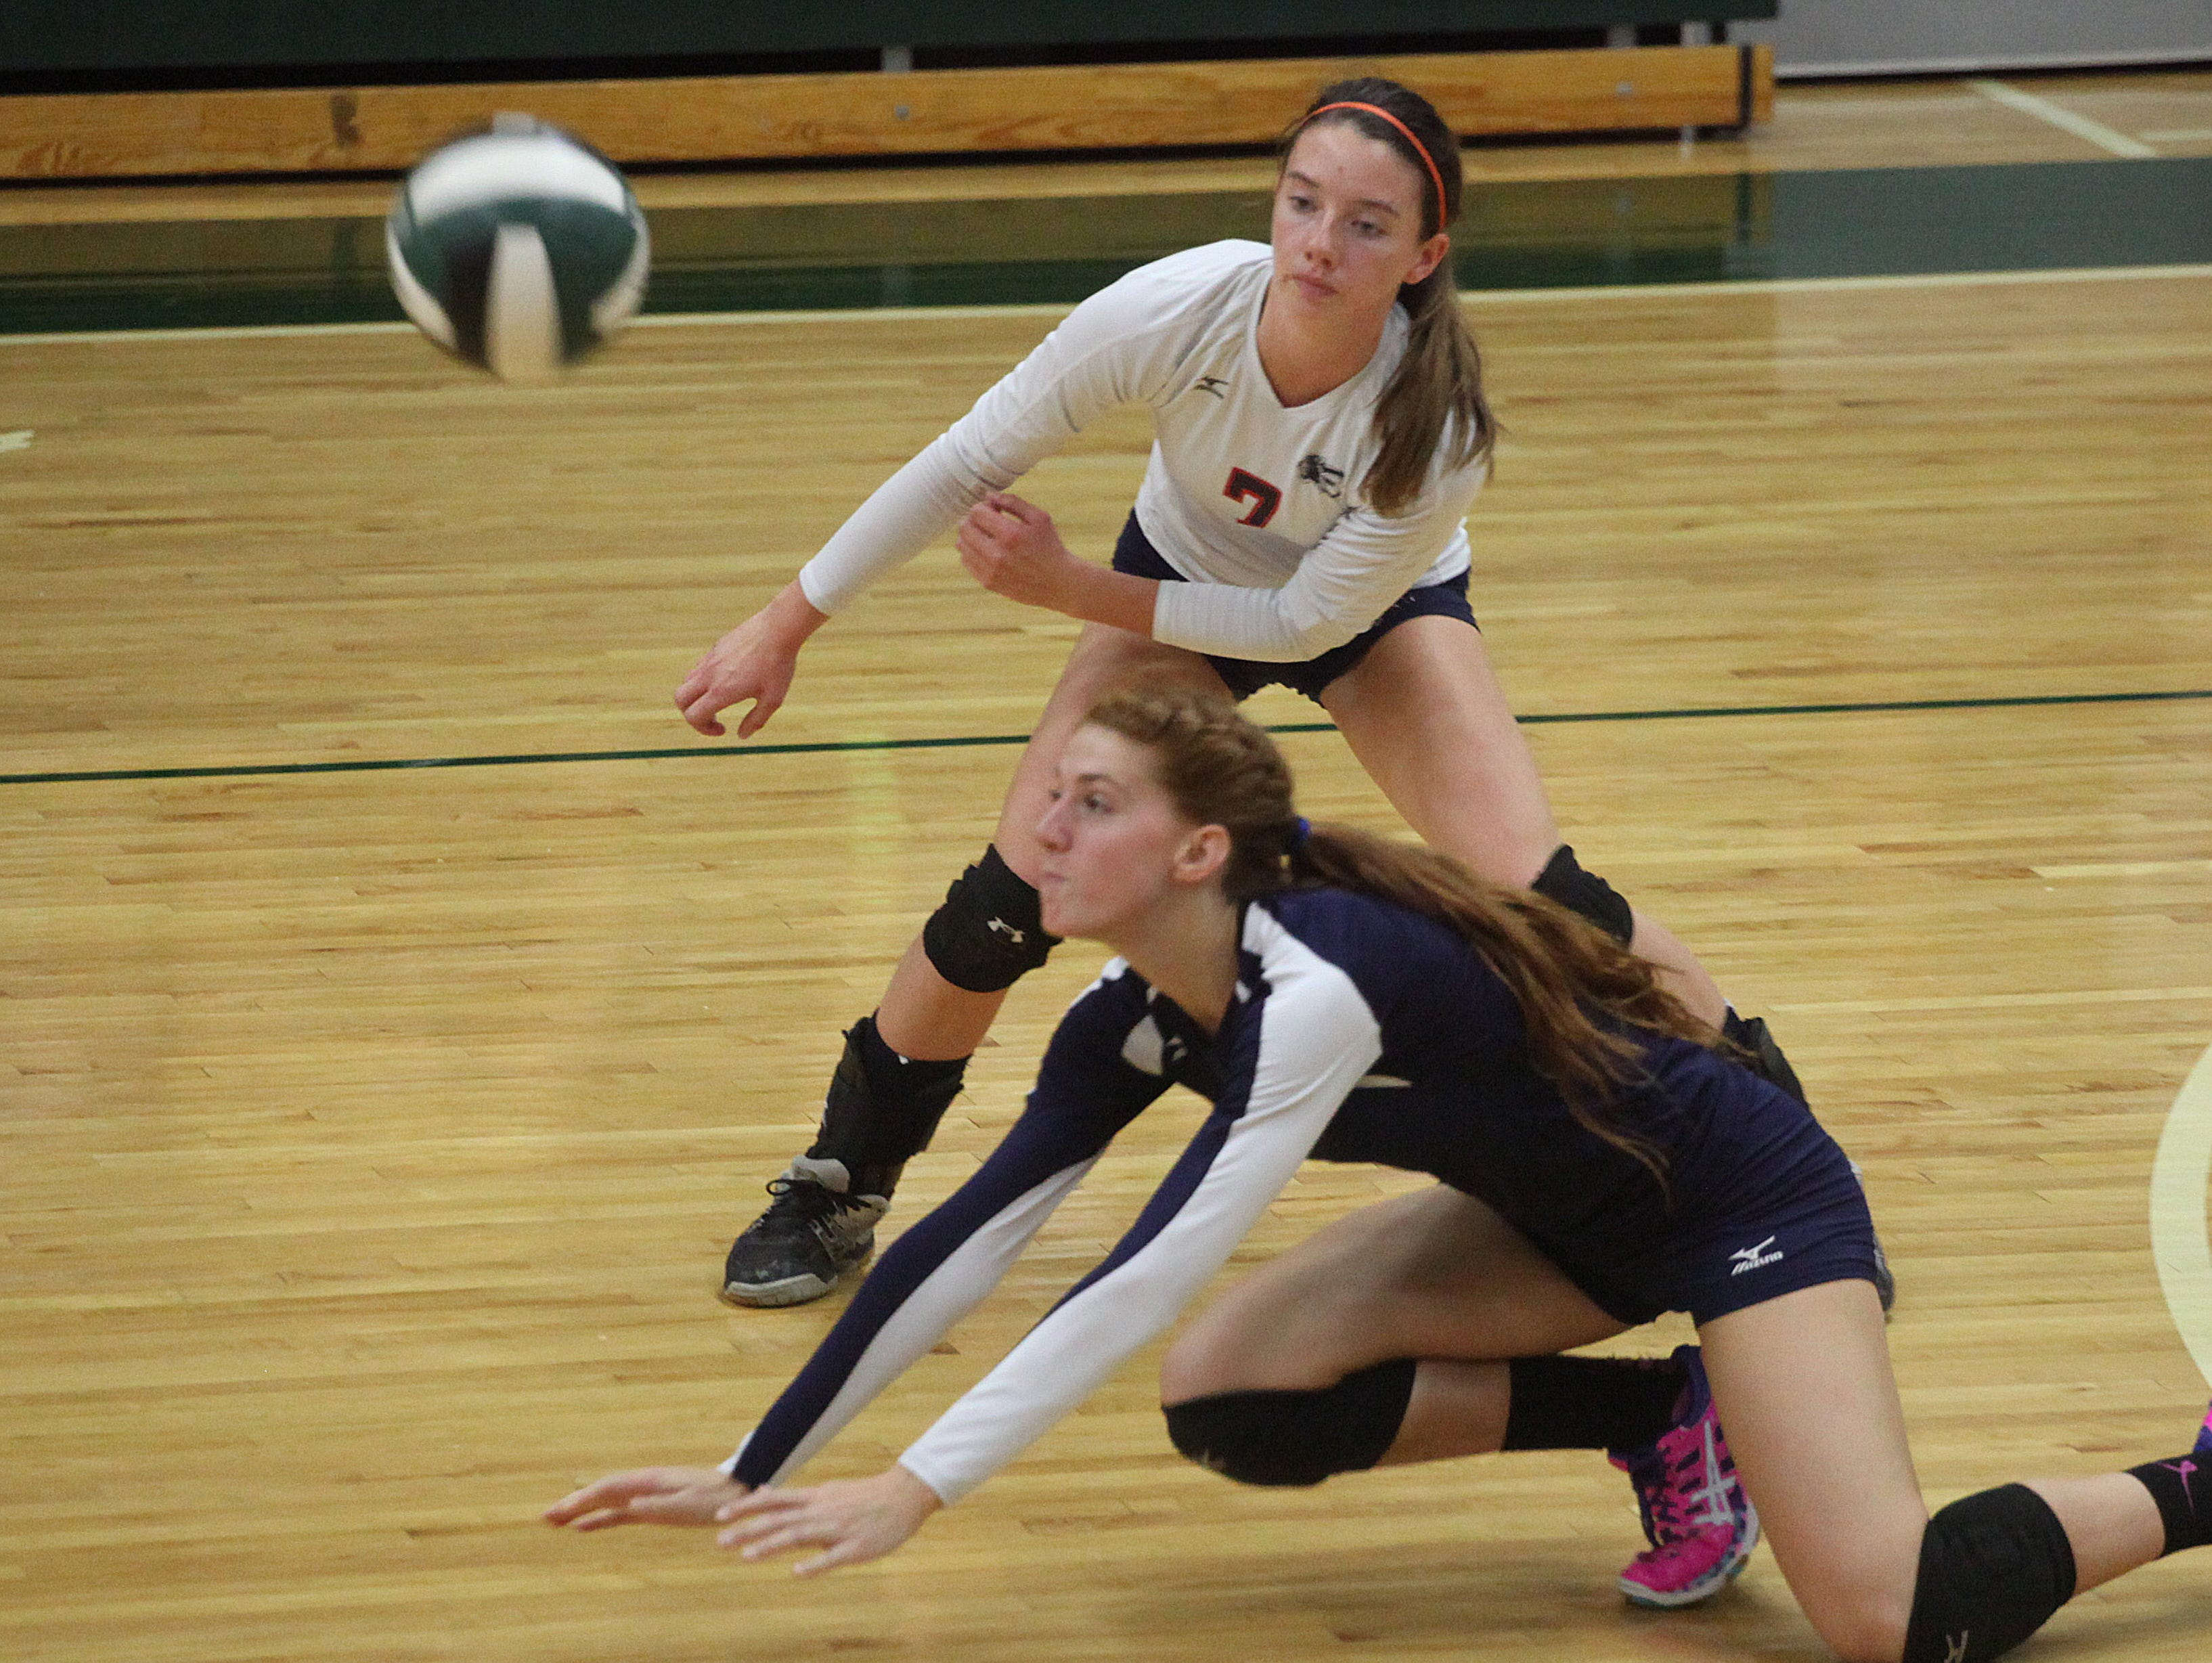 Estero's Lily Ciaramitaro, front, and Marley Garner attempt to save a point during the 6A-11 volleyball final at Fort Myers High School on Thursday.